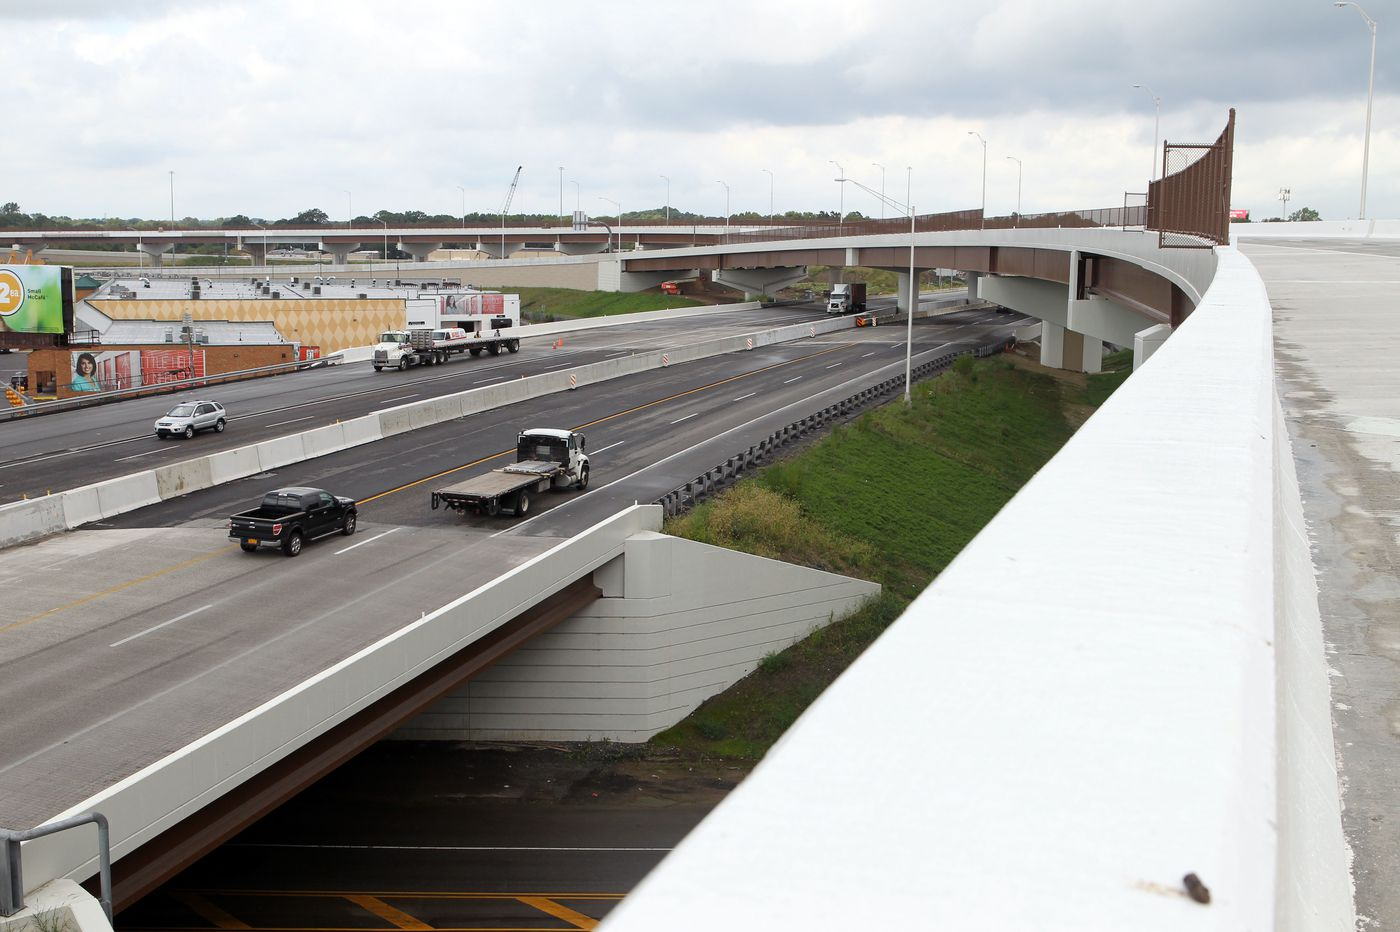 New Pa  stretch completes I-95 after 62 years